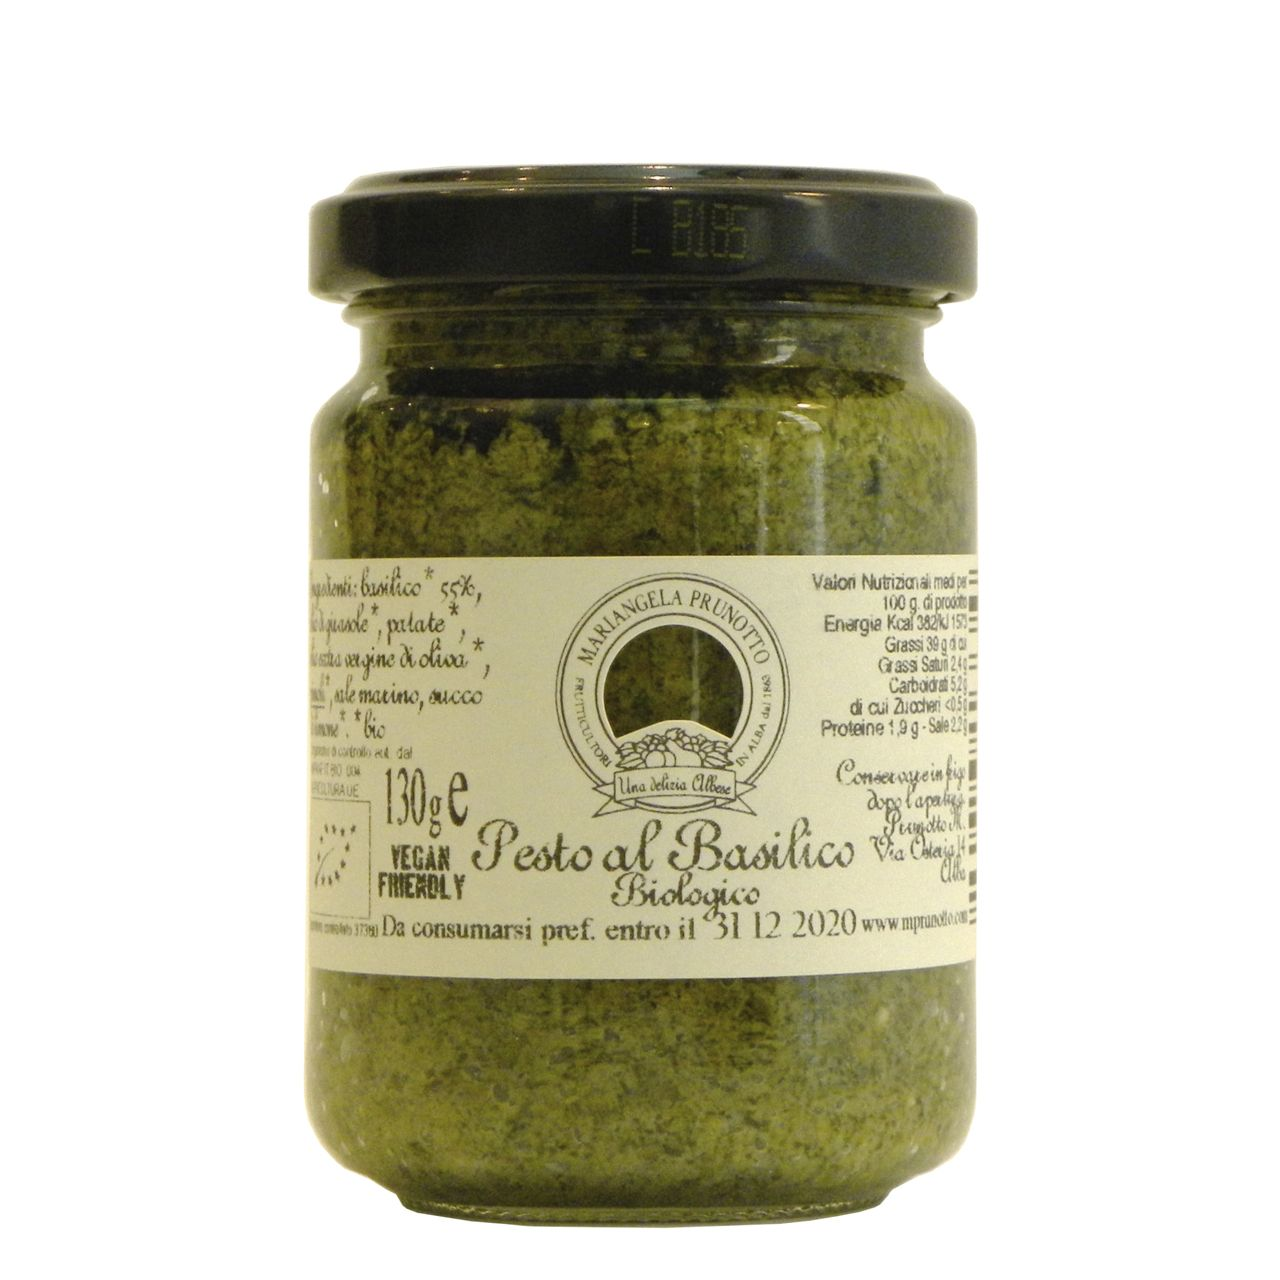 Pesto Basilico Prunotto Biologico – Prunotto Organic Basil Pesto – Gustorotondo – Italian Food Boutique